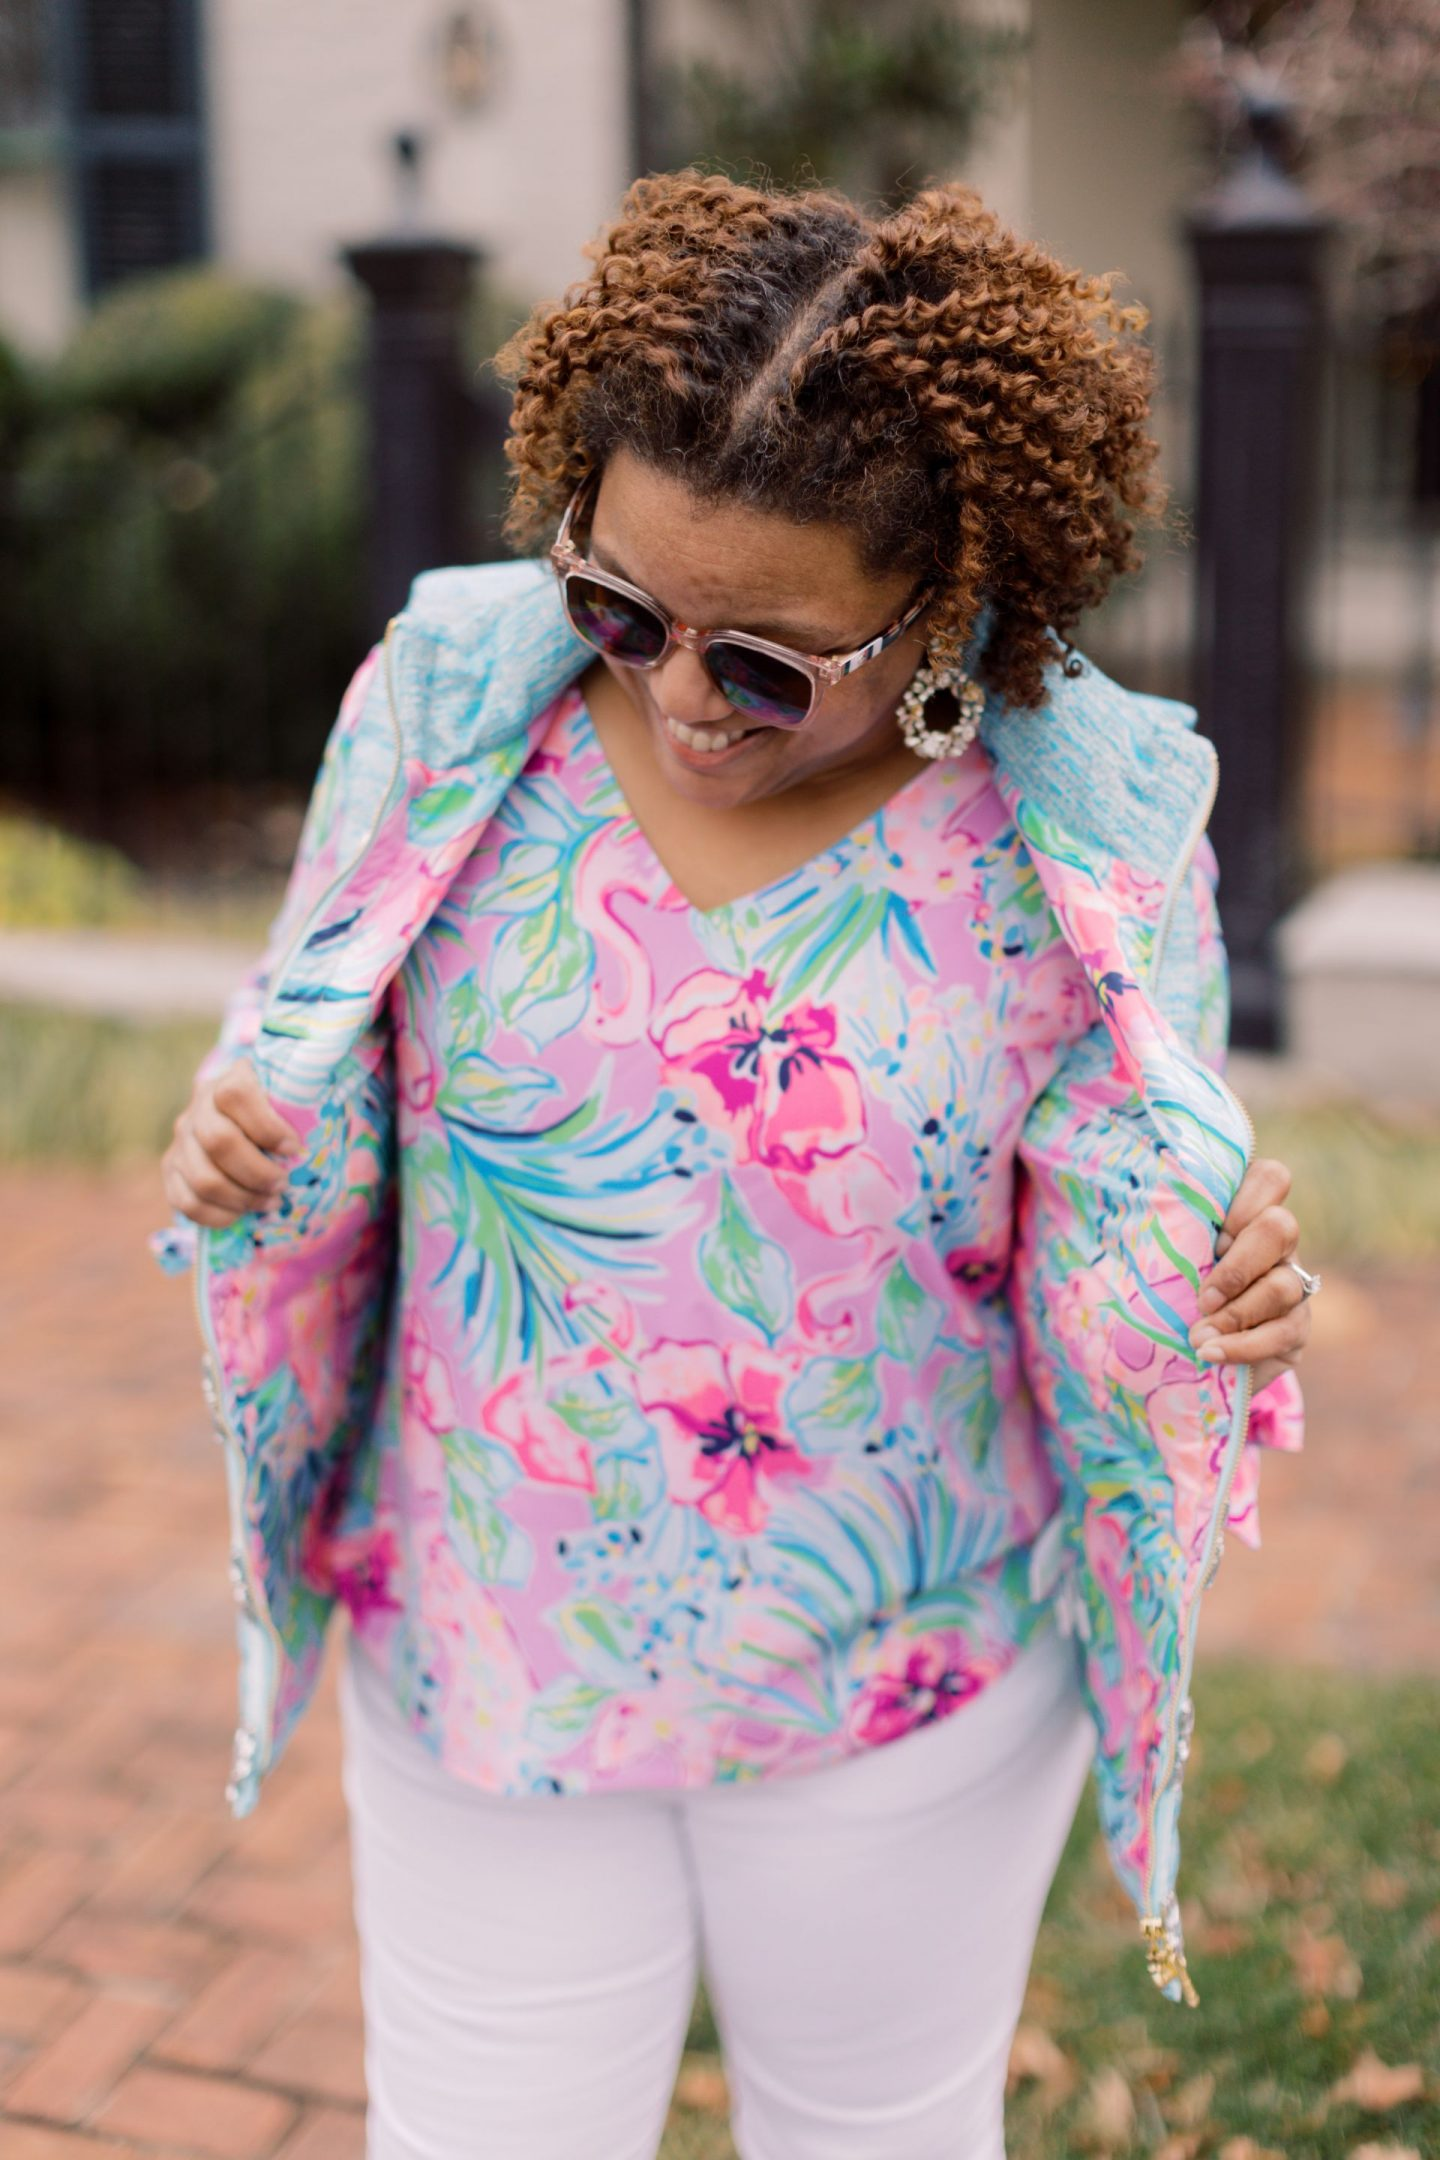 Lilly Pulitzer Sale by popular Kentucky fashion blog, Really Rynetta: image of a woman wearing a Lilly Pulitzer puffer vest and Pamela top.